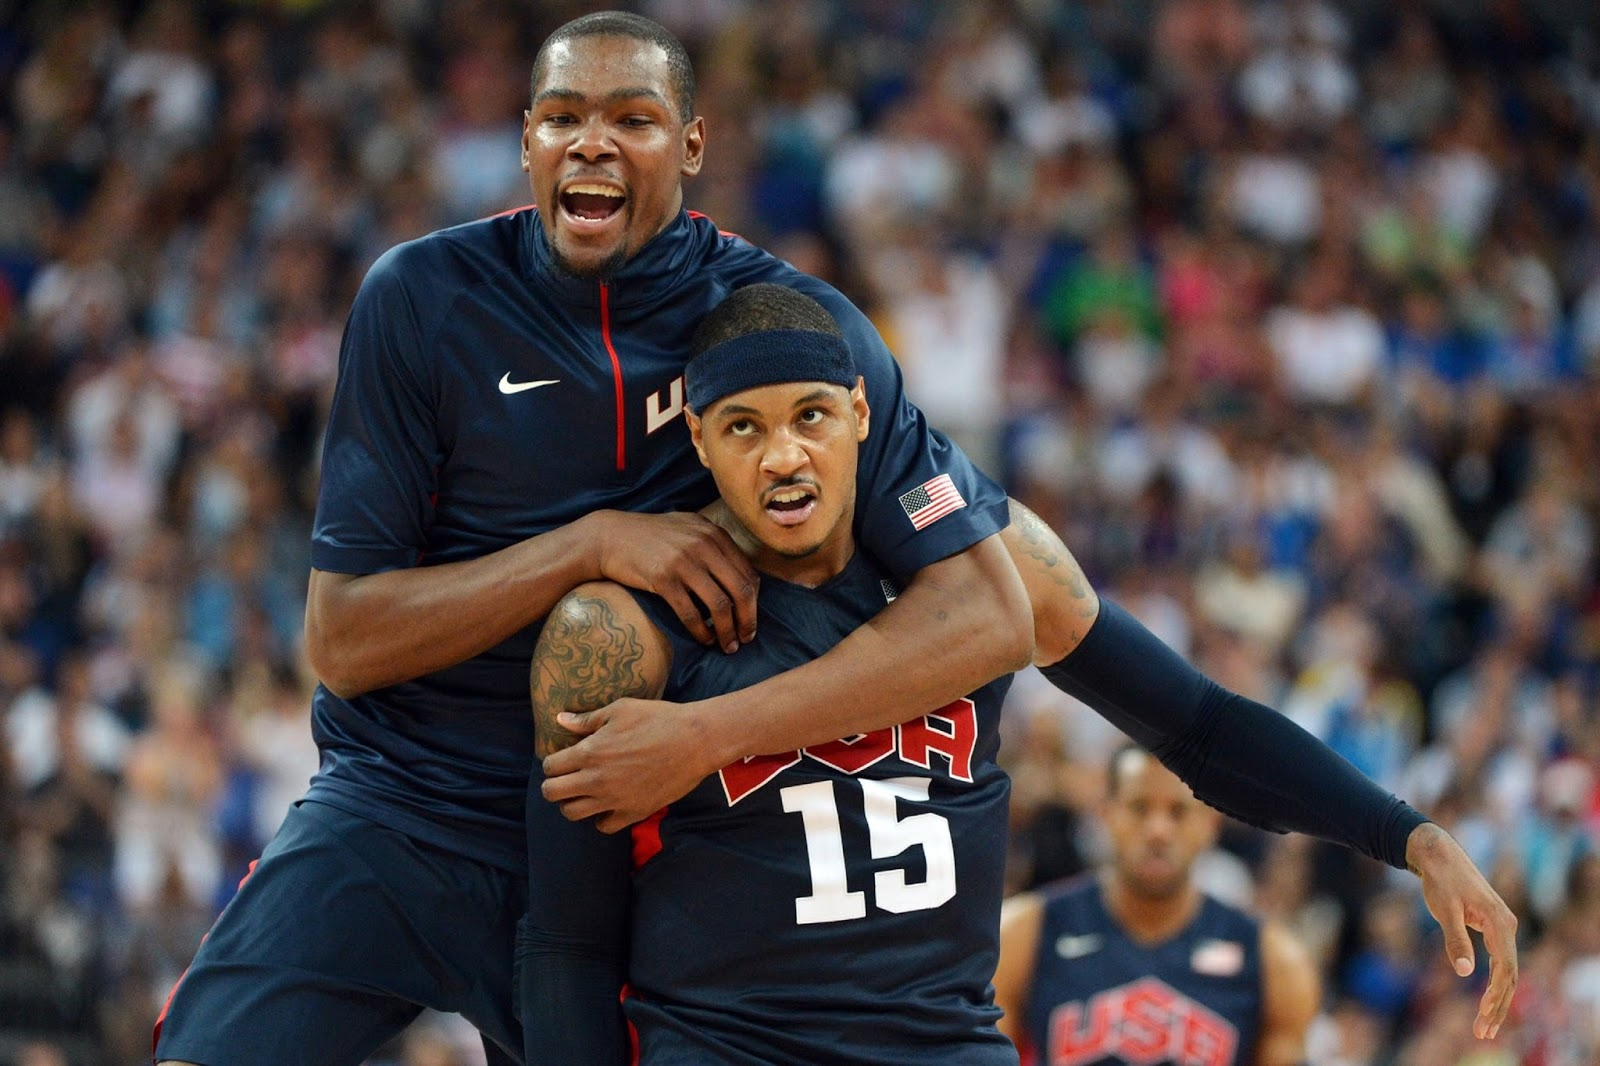 TEAM USA BASKETBALL 2016 RIO OLYMPICS 6